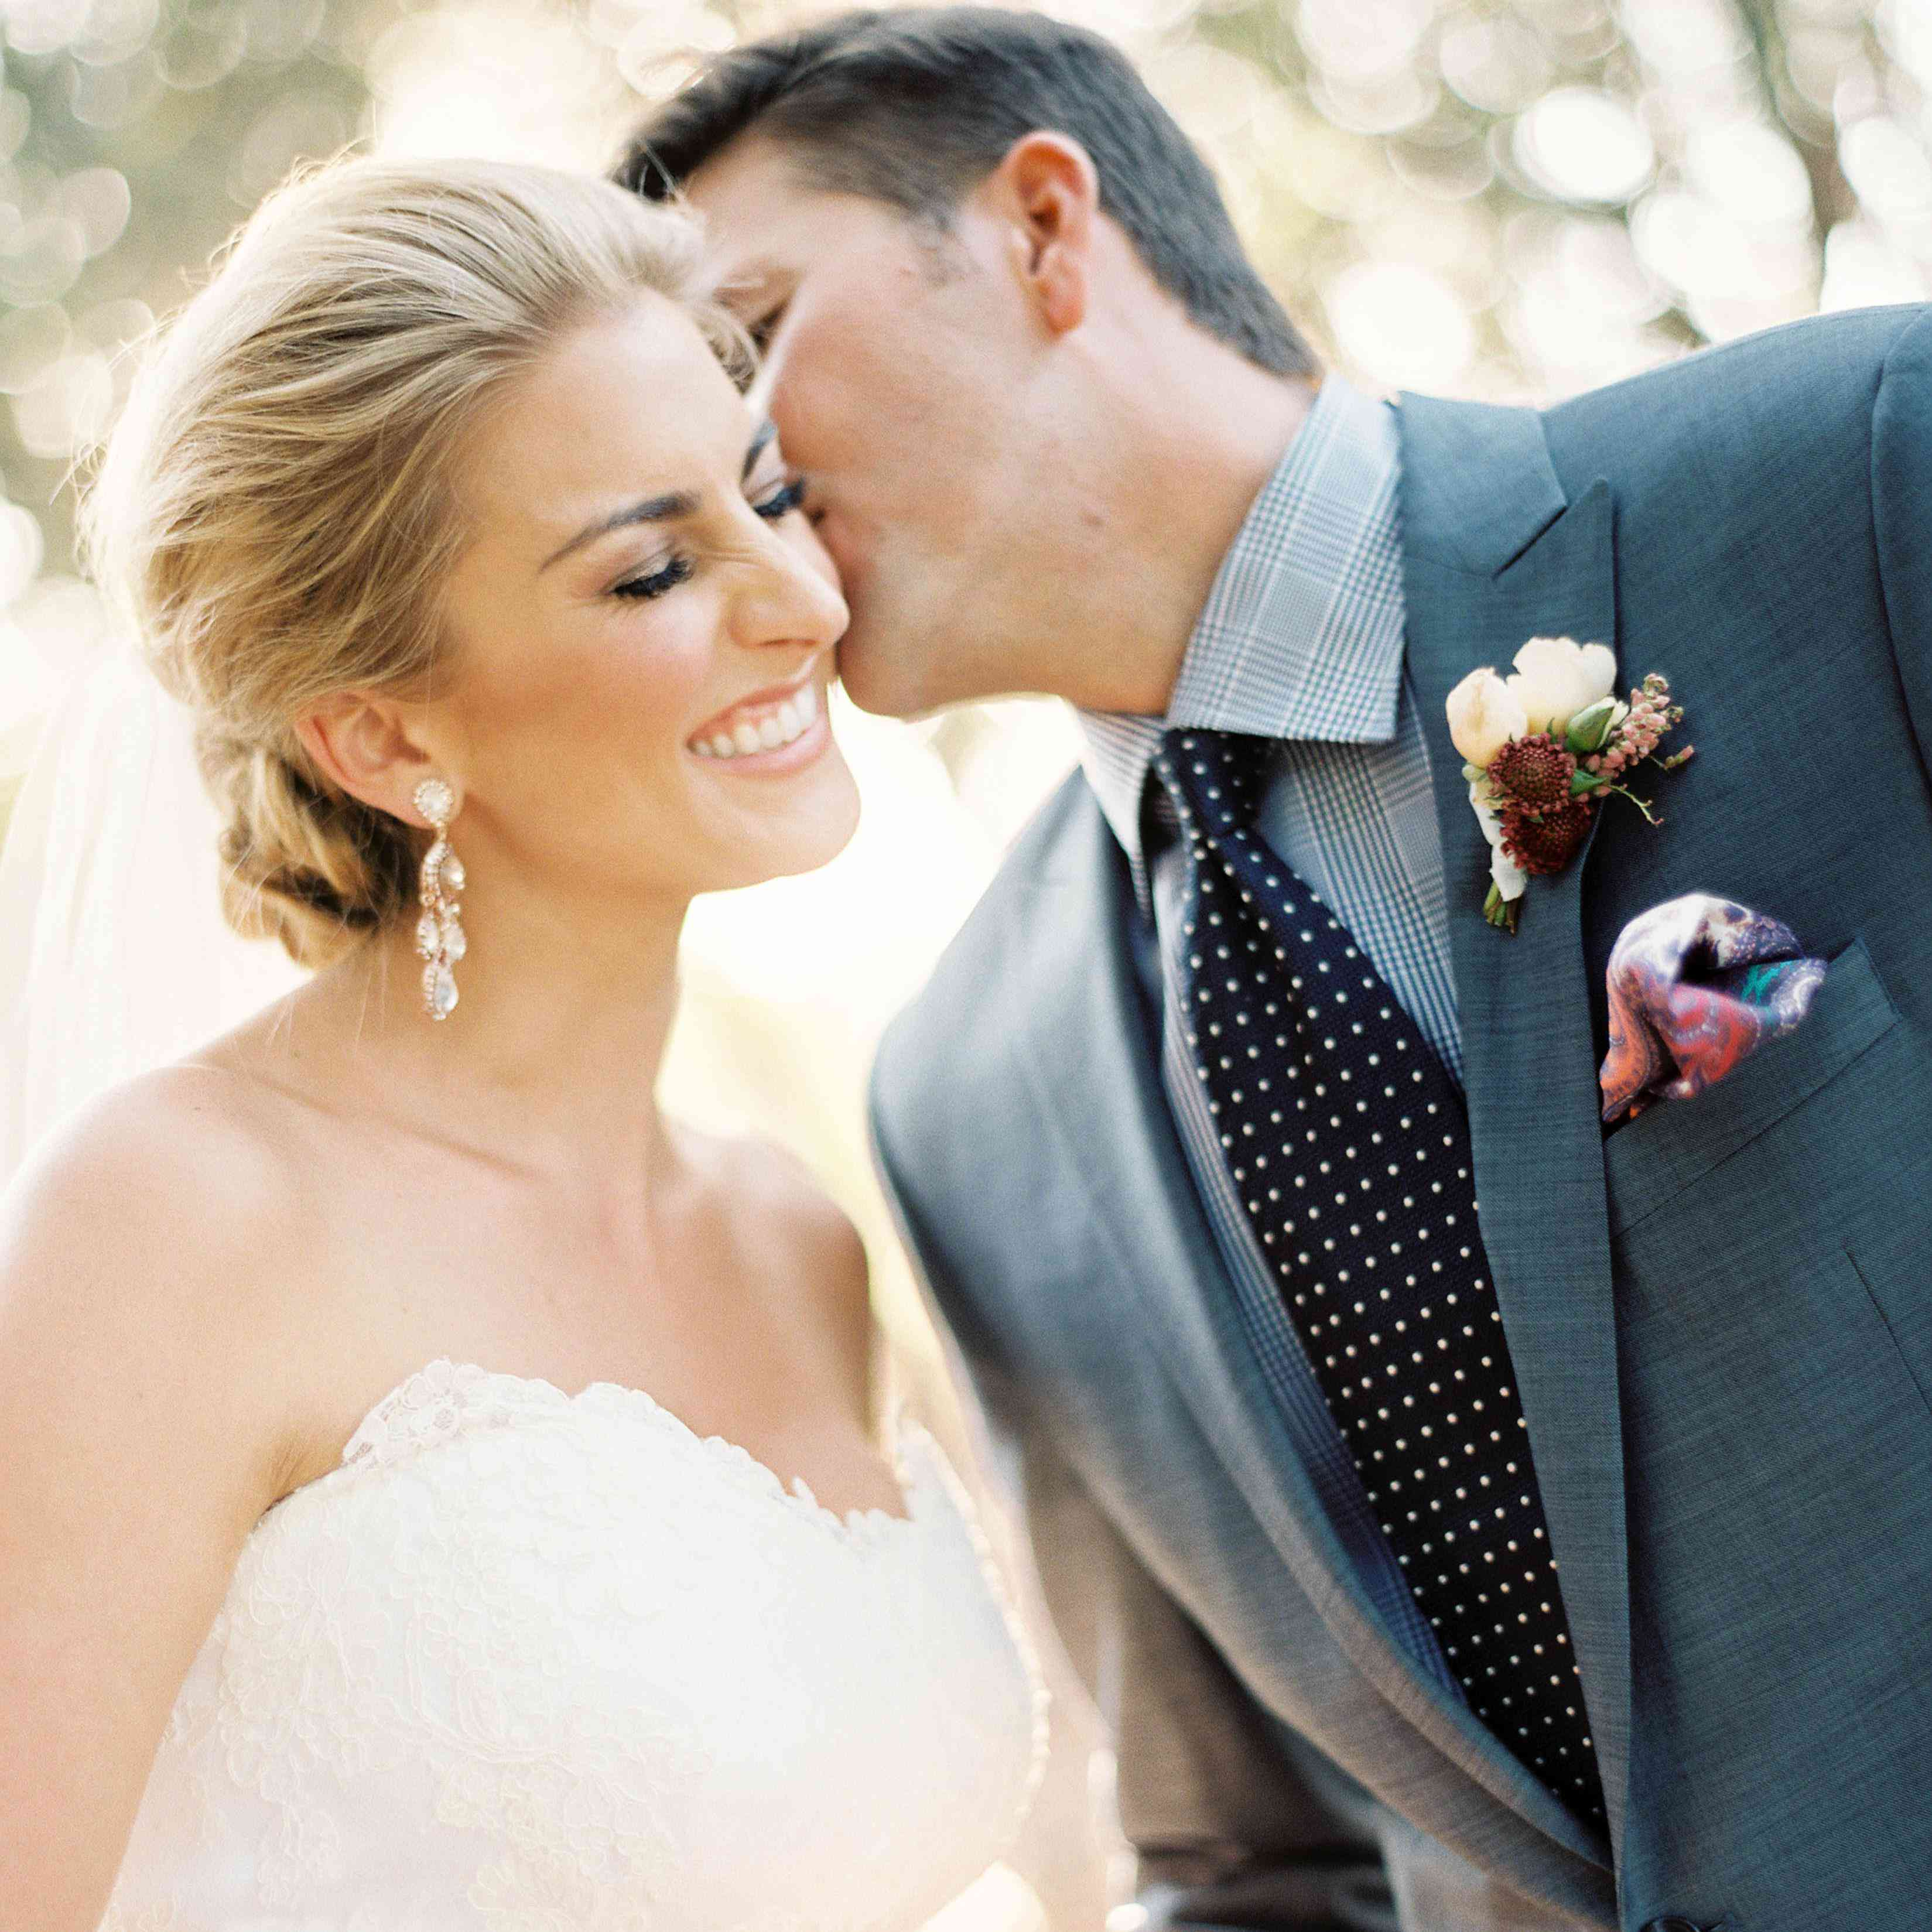 An Expert-Approved Skincare Routine for Glowing Skin by Your Wedding Day